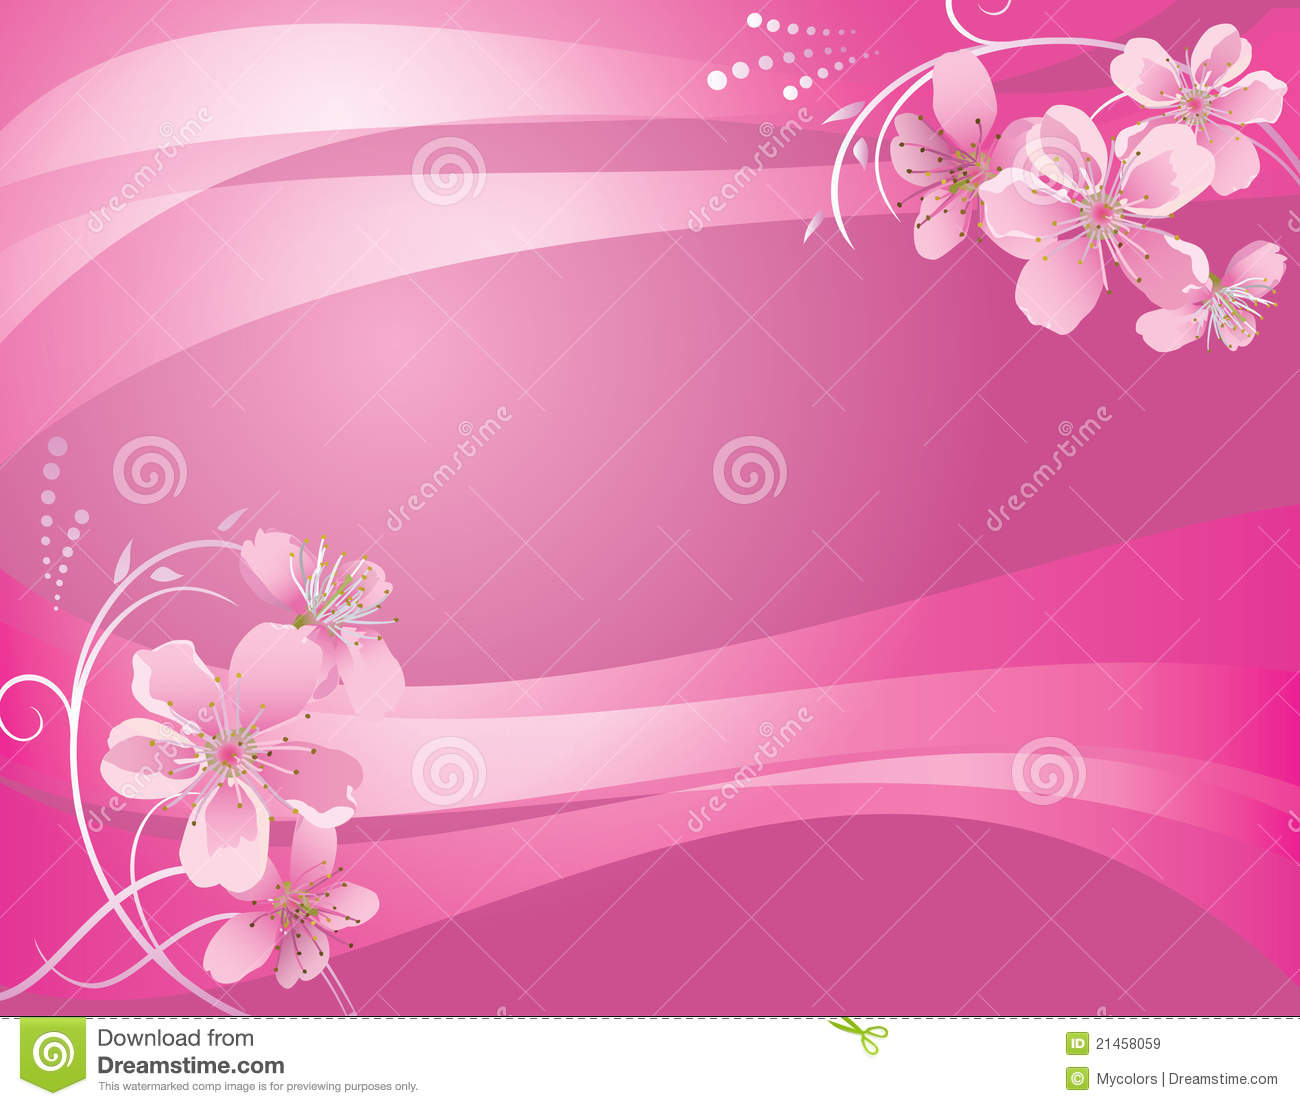 Breast Cancer 3d Wallpaper For Pc Abstract Vector Pink Background With Flower Stock Vector